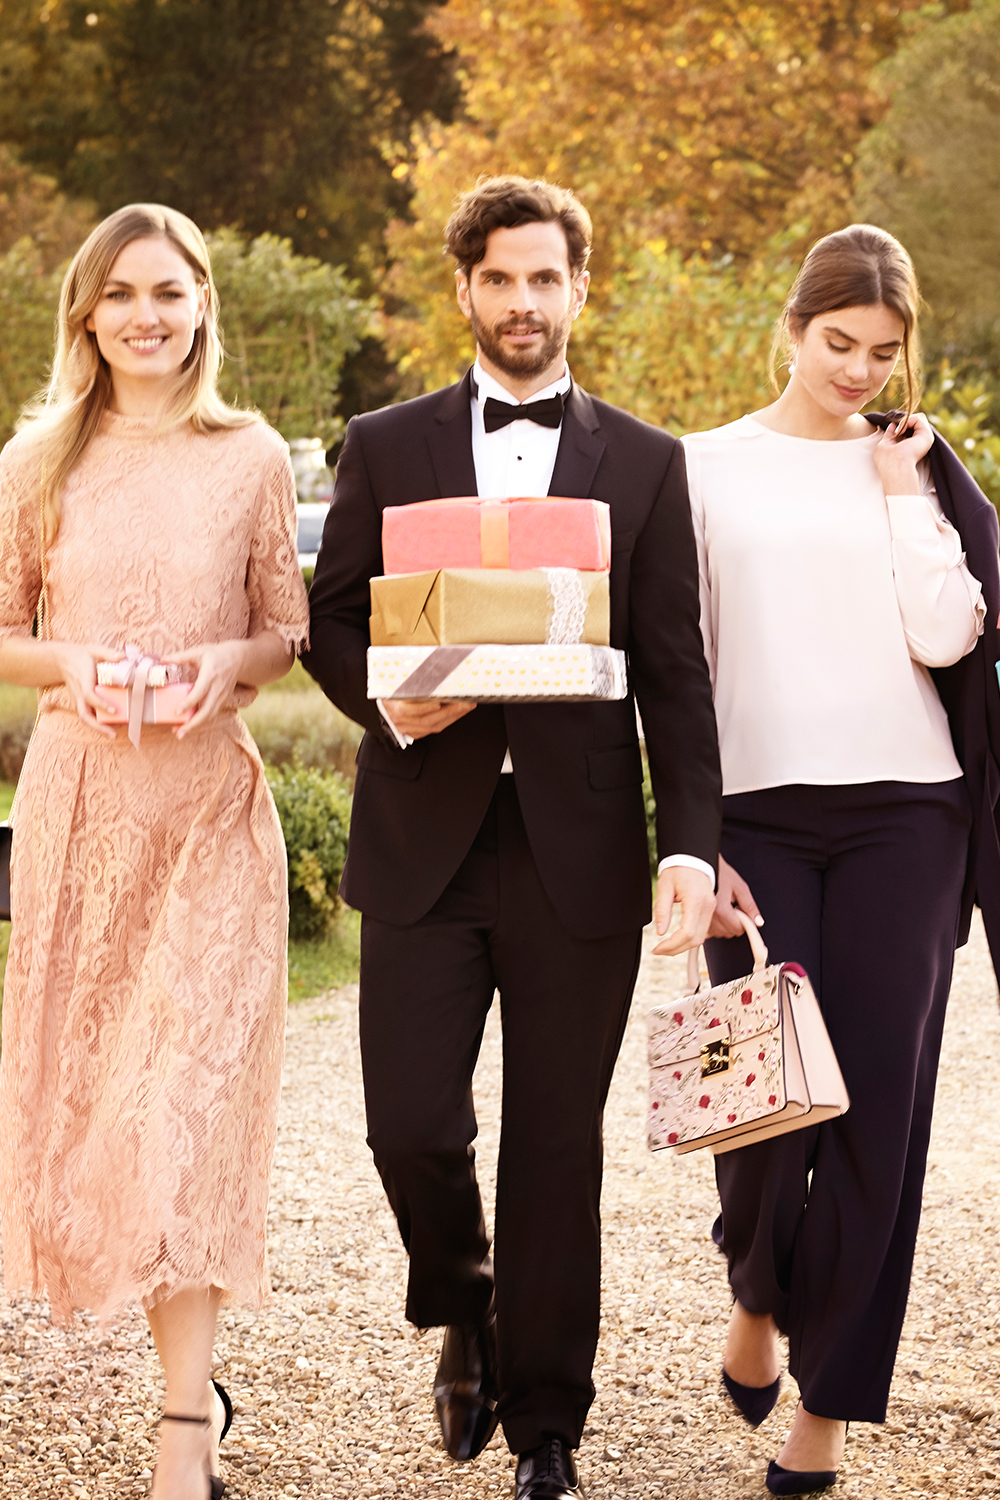 Marks and spencer wedding shop online wedding hub wedding guest attire from marks and spencer junglespirit Images